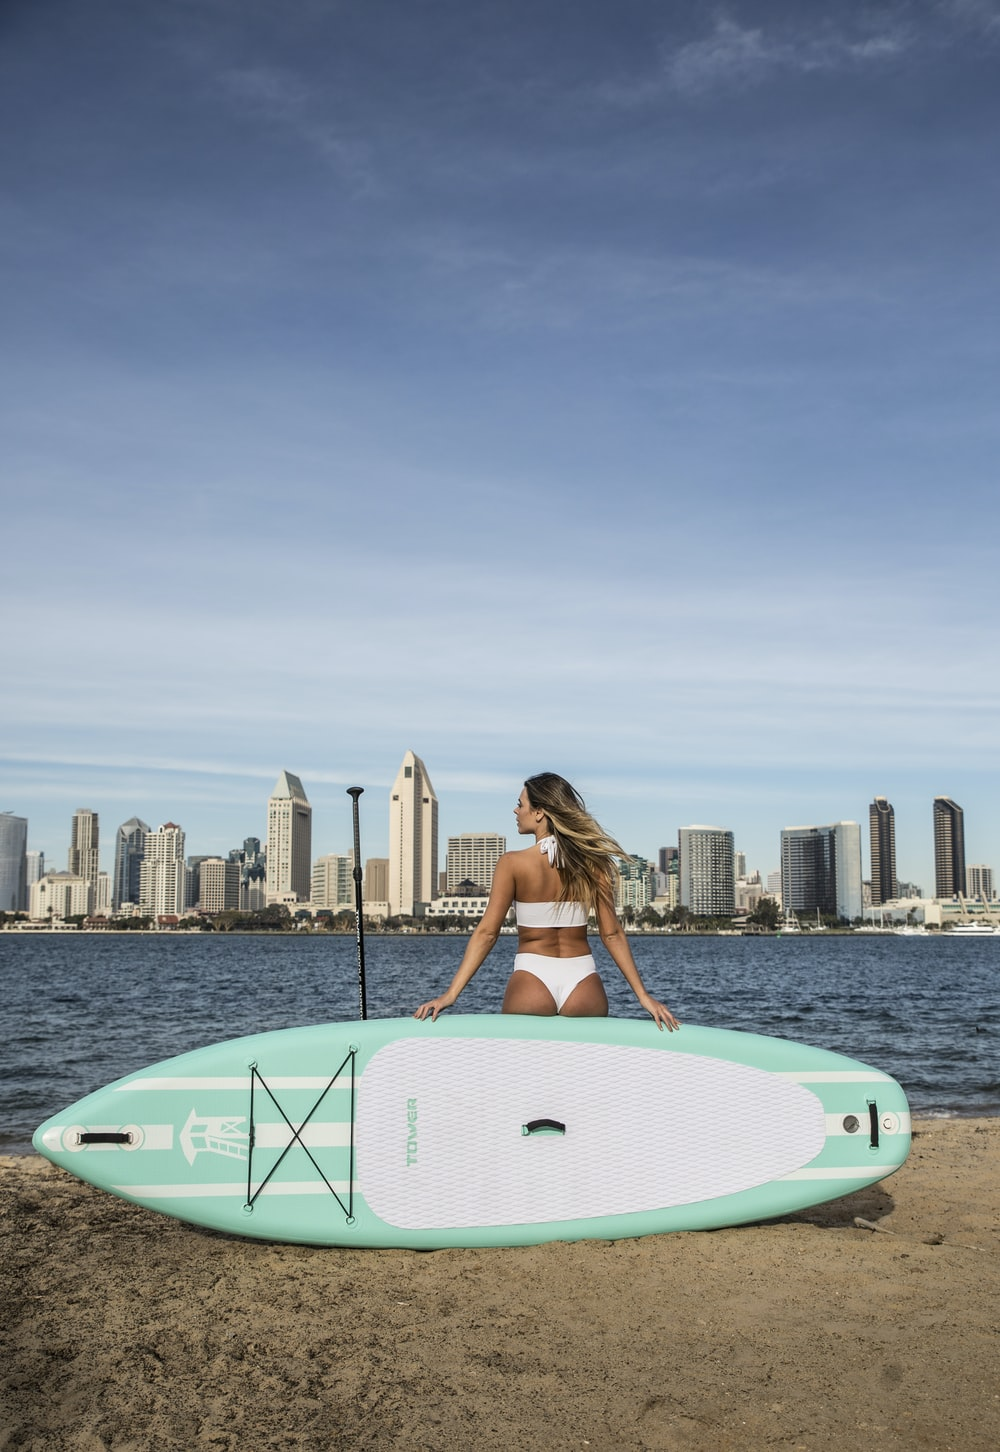 woman in white and blue surfboard on body of water during daytime